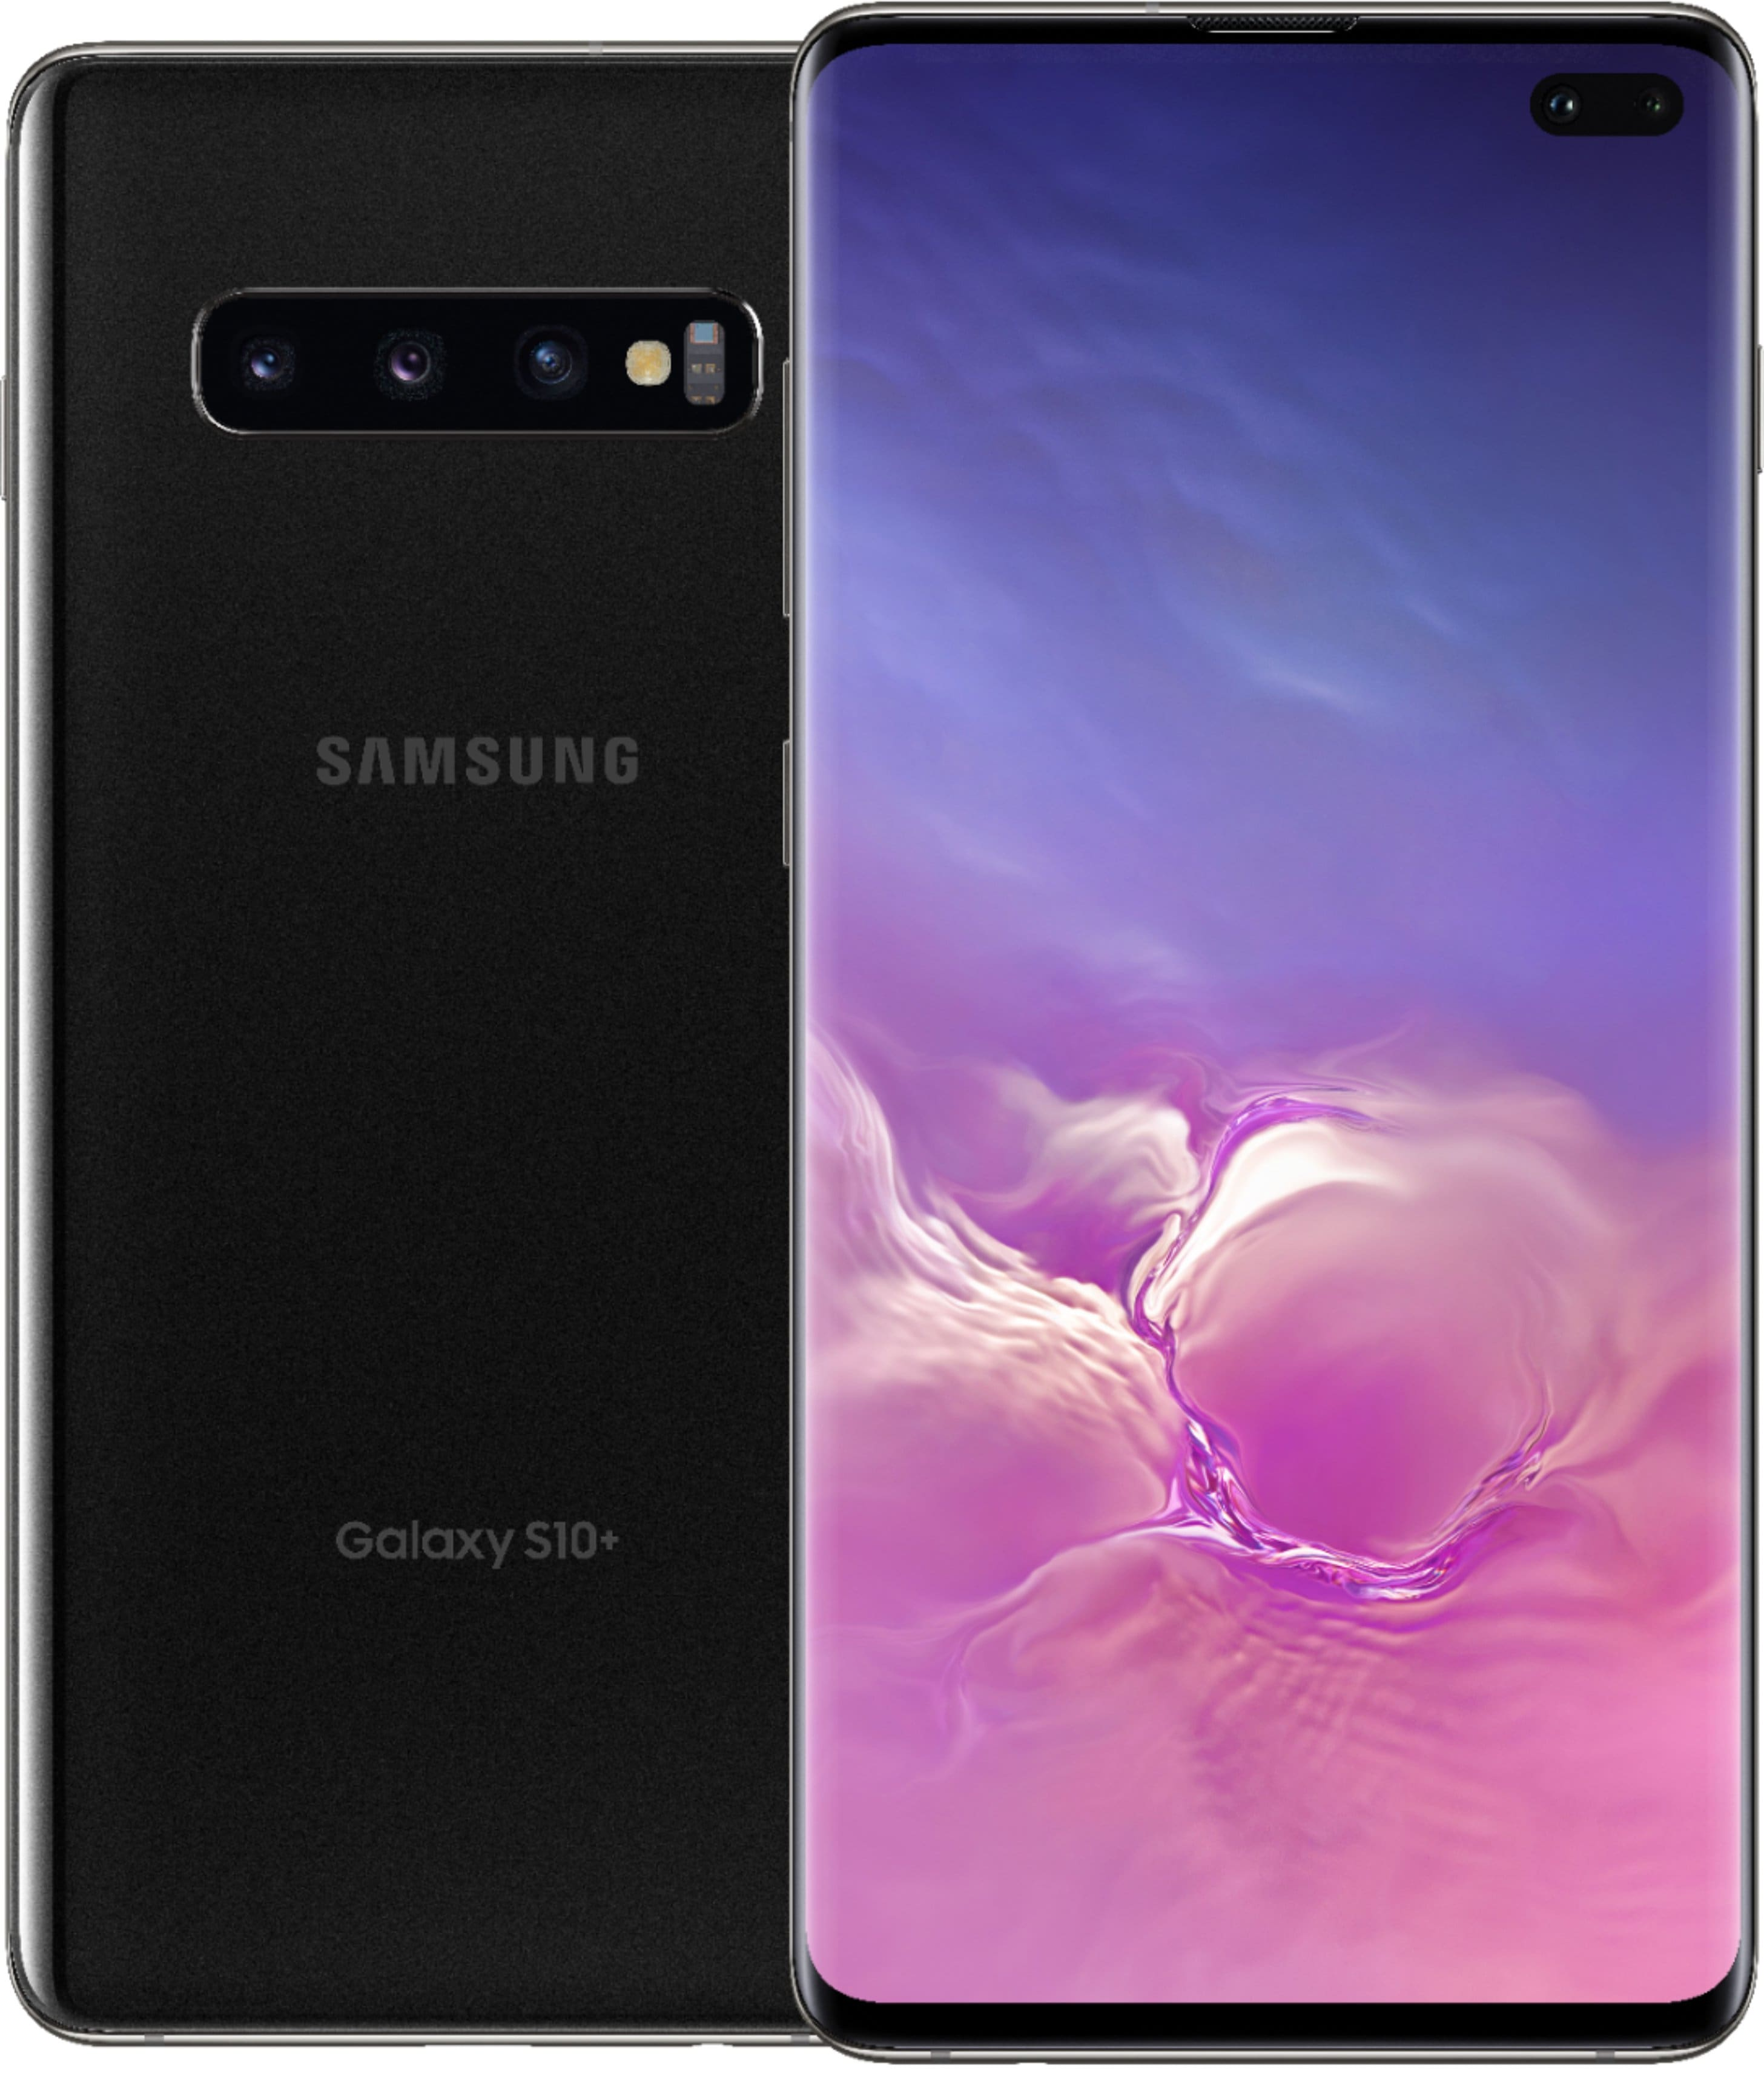 SPRINT ADD A LINE ONLY- Samsung - Galaxy S10+ with 128GB Memory- White (Pay only taxes and activation))